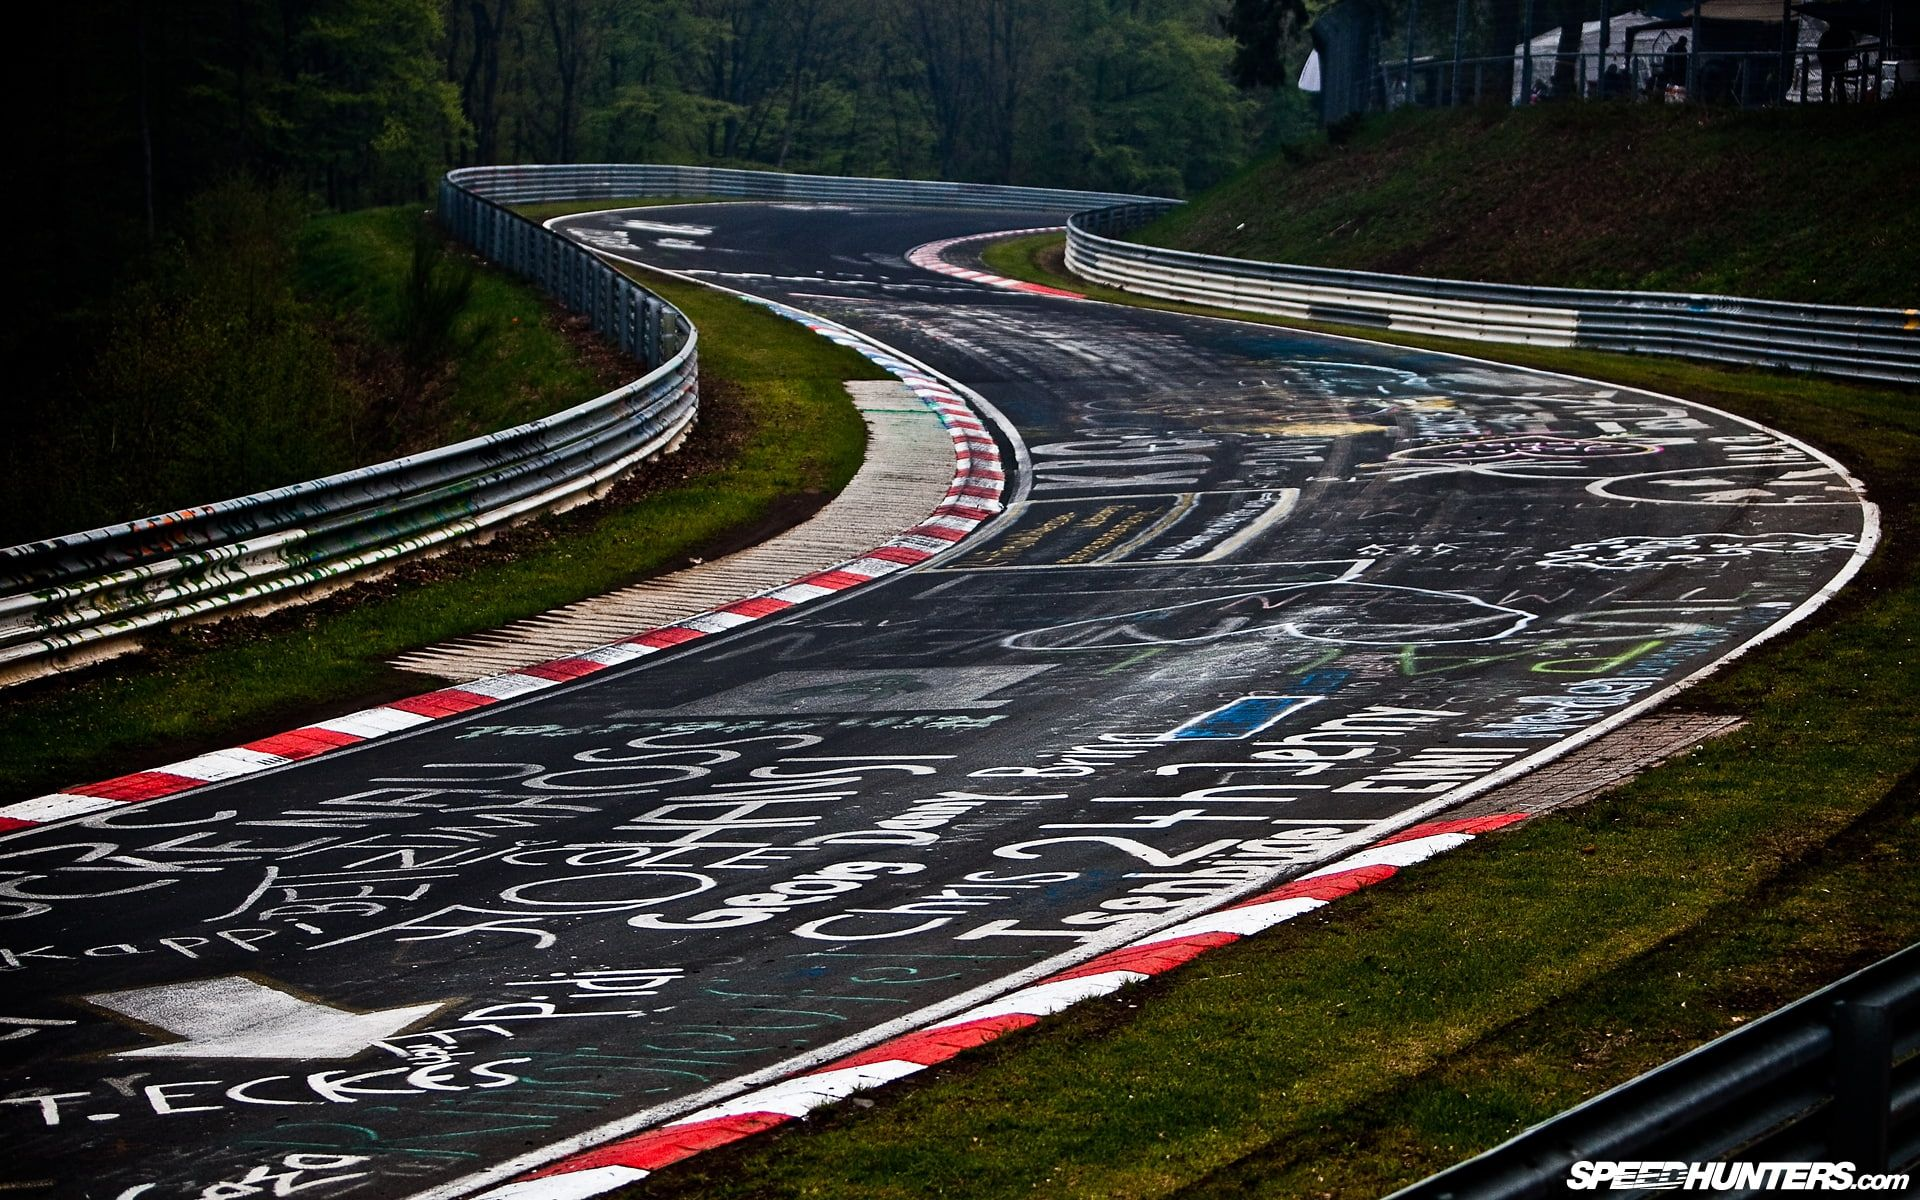 Nurburgring Track Race Track Hd Cars Race Track Nurburgring 1080p Wallpaper Hdwallpaper Desktop Race Track Racing Track